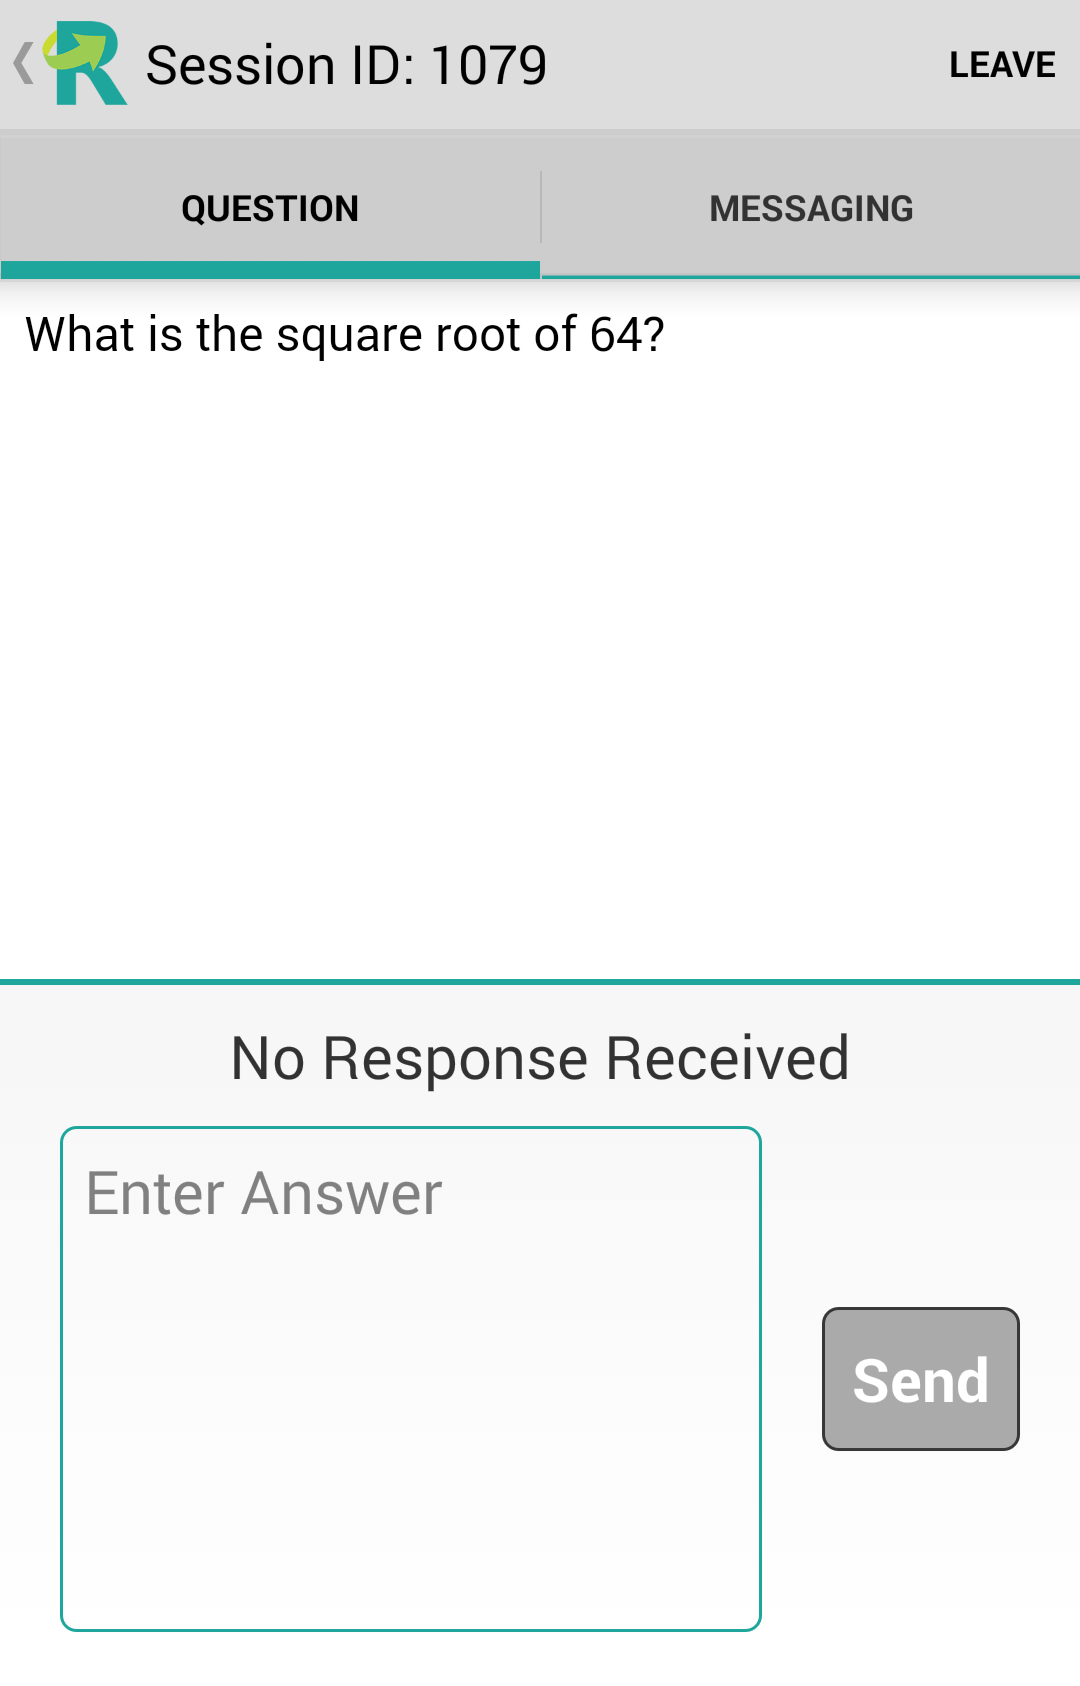 ResponseWare for Android Participants Guide 6 To view the question, tap the Question View icon in the upper right of the screen.